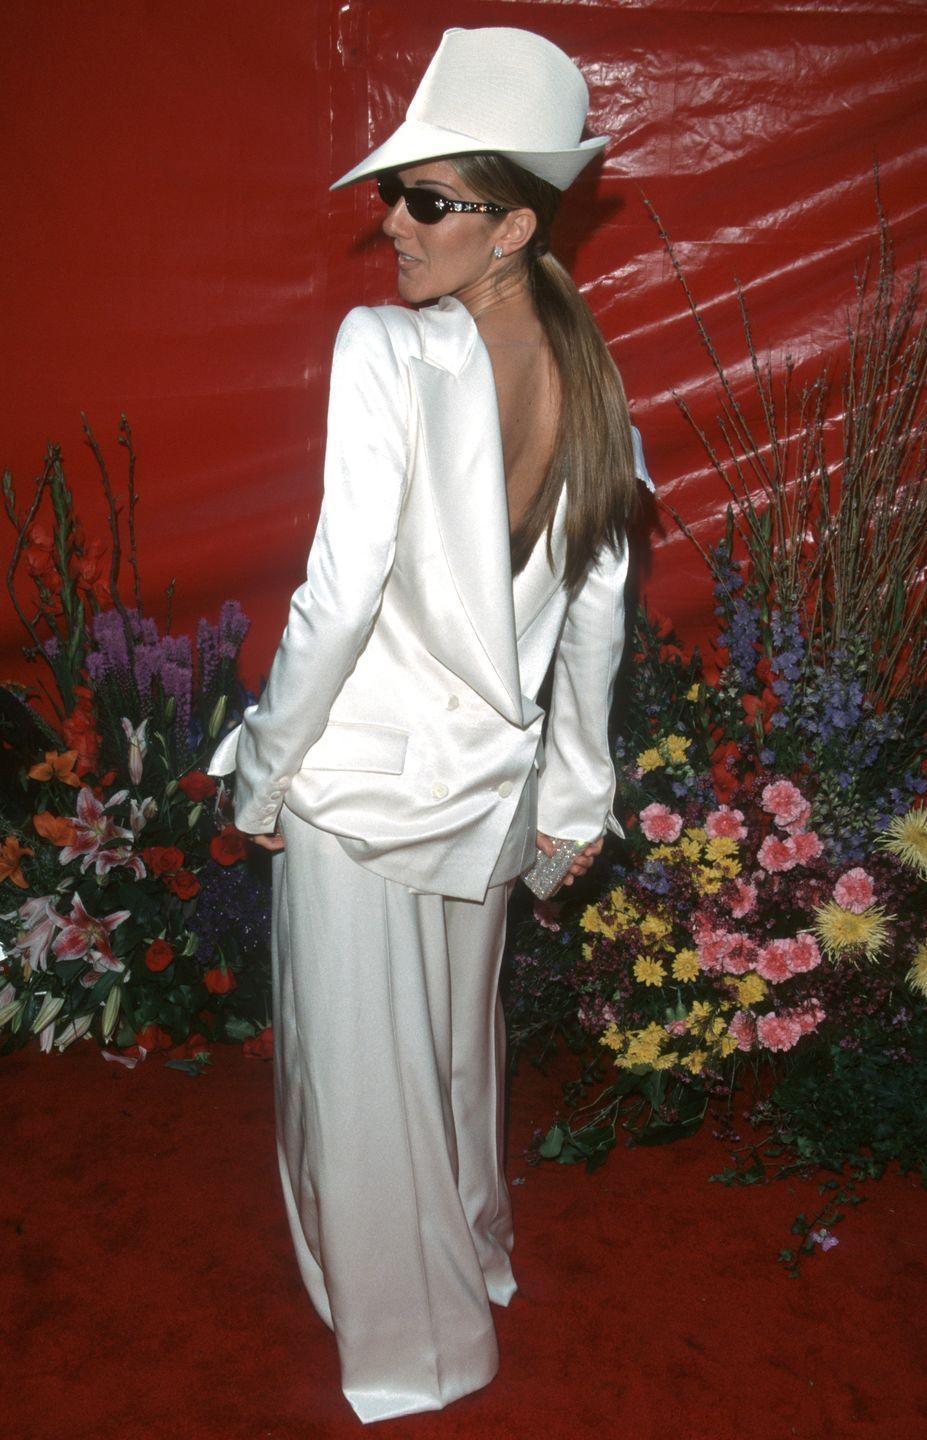 <p>One word: UNFORGETTABLE. Celine knew how to be the talk of the red carpet that year when she wore the blazer on her all-white Dior suit backwards, and accessorized with a pointed hat and sunglasses (note: the ceremony was held in the evening). She performed along side Andrea Bocelli at the ceremony. </p>